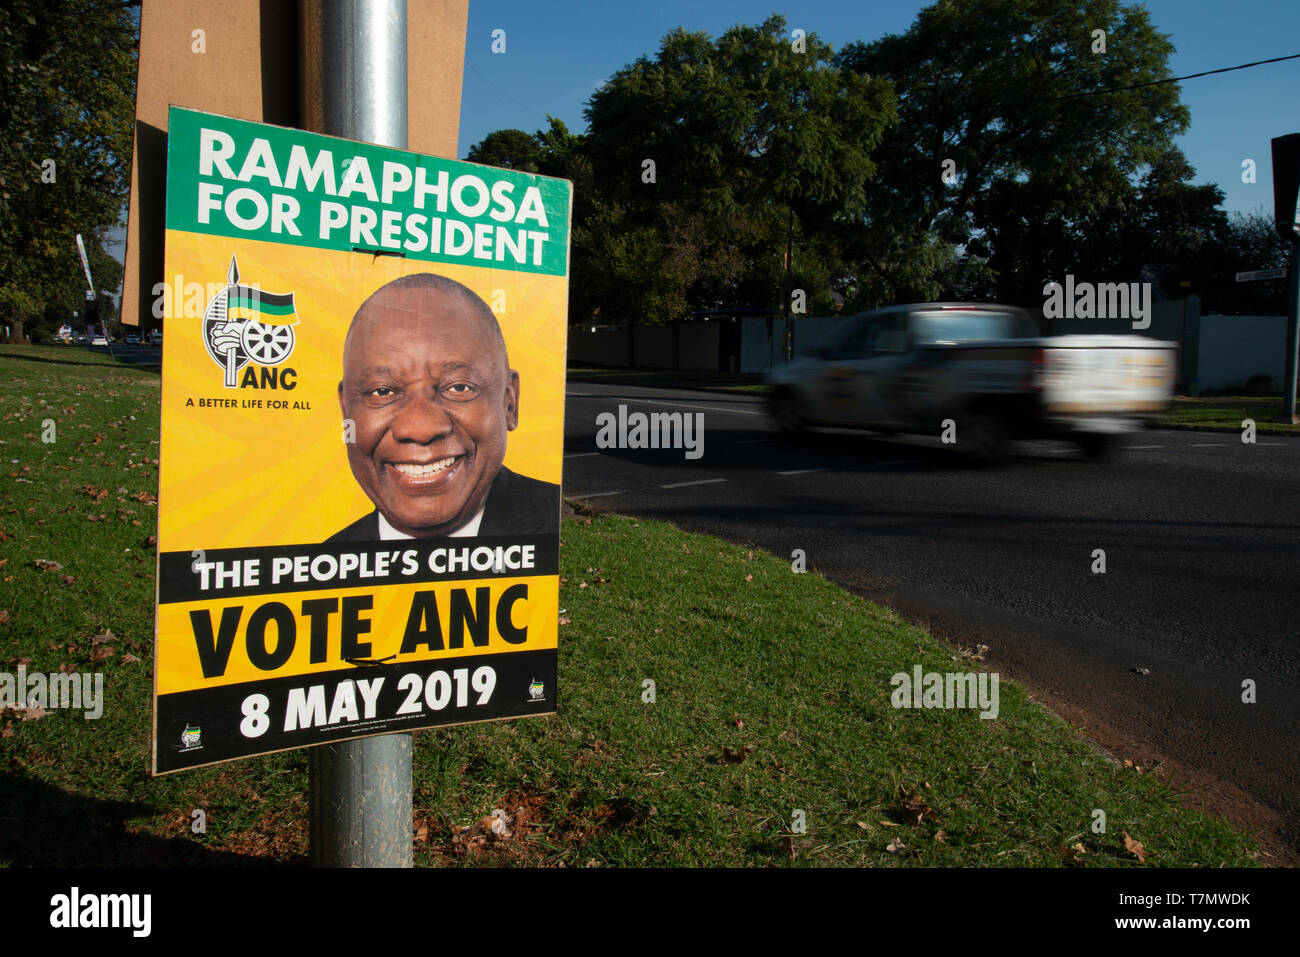 Johannesburg, South Africa, 7th May, 2019. An ANC election poster featuring President Cyril Ramaposhosa is seen in Emmarentia on the eve of national elections, May 8. Credit: Eva-Lotta Jansson/Alamy - Stock Image